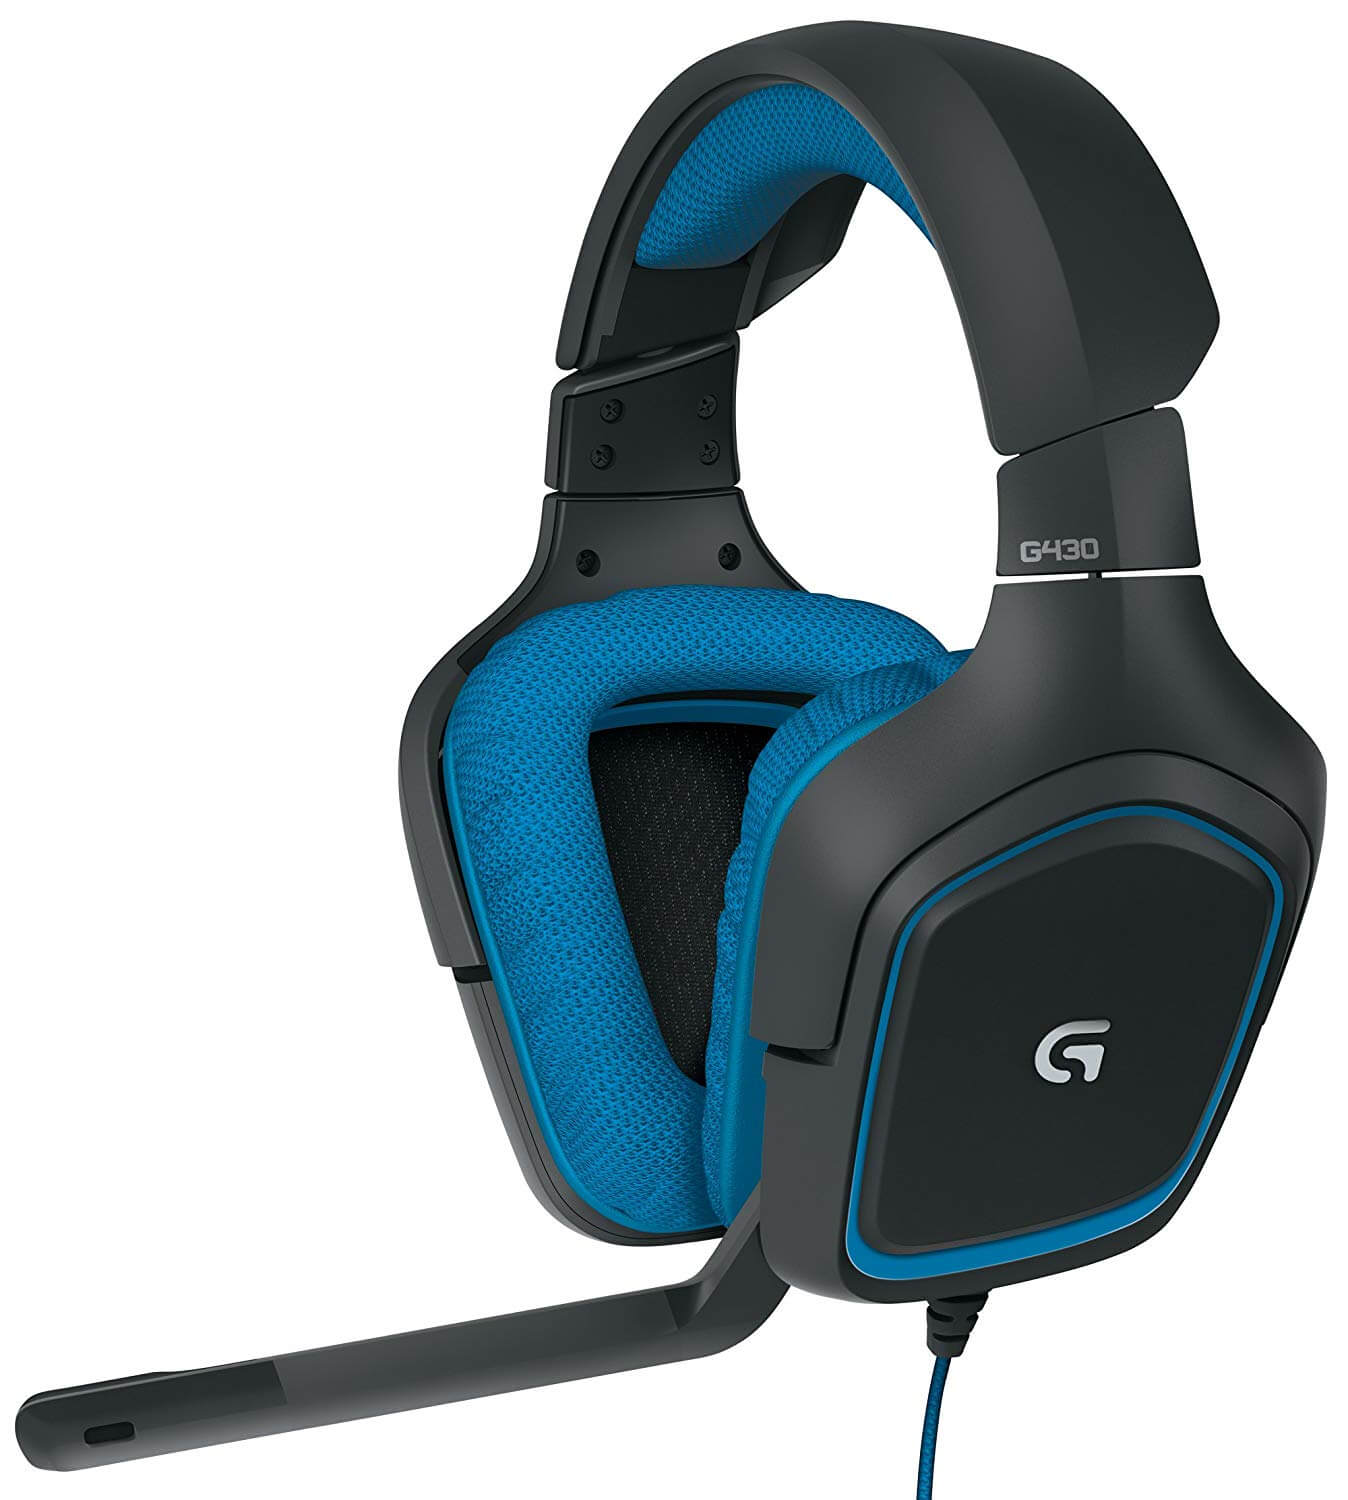 Logitech g430 DTS Headphone X and Dolby 7.1 Surround Sound Headset